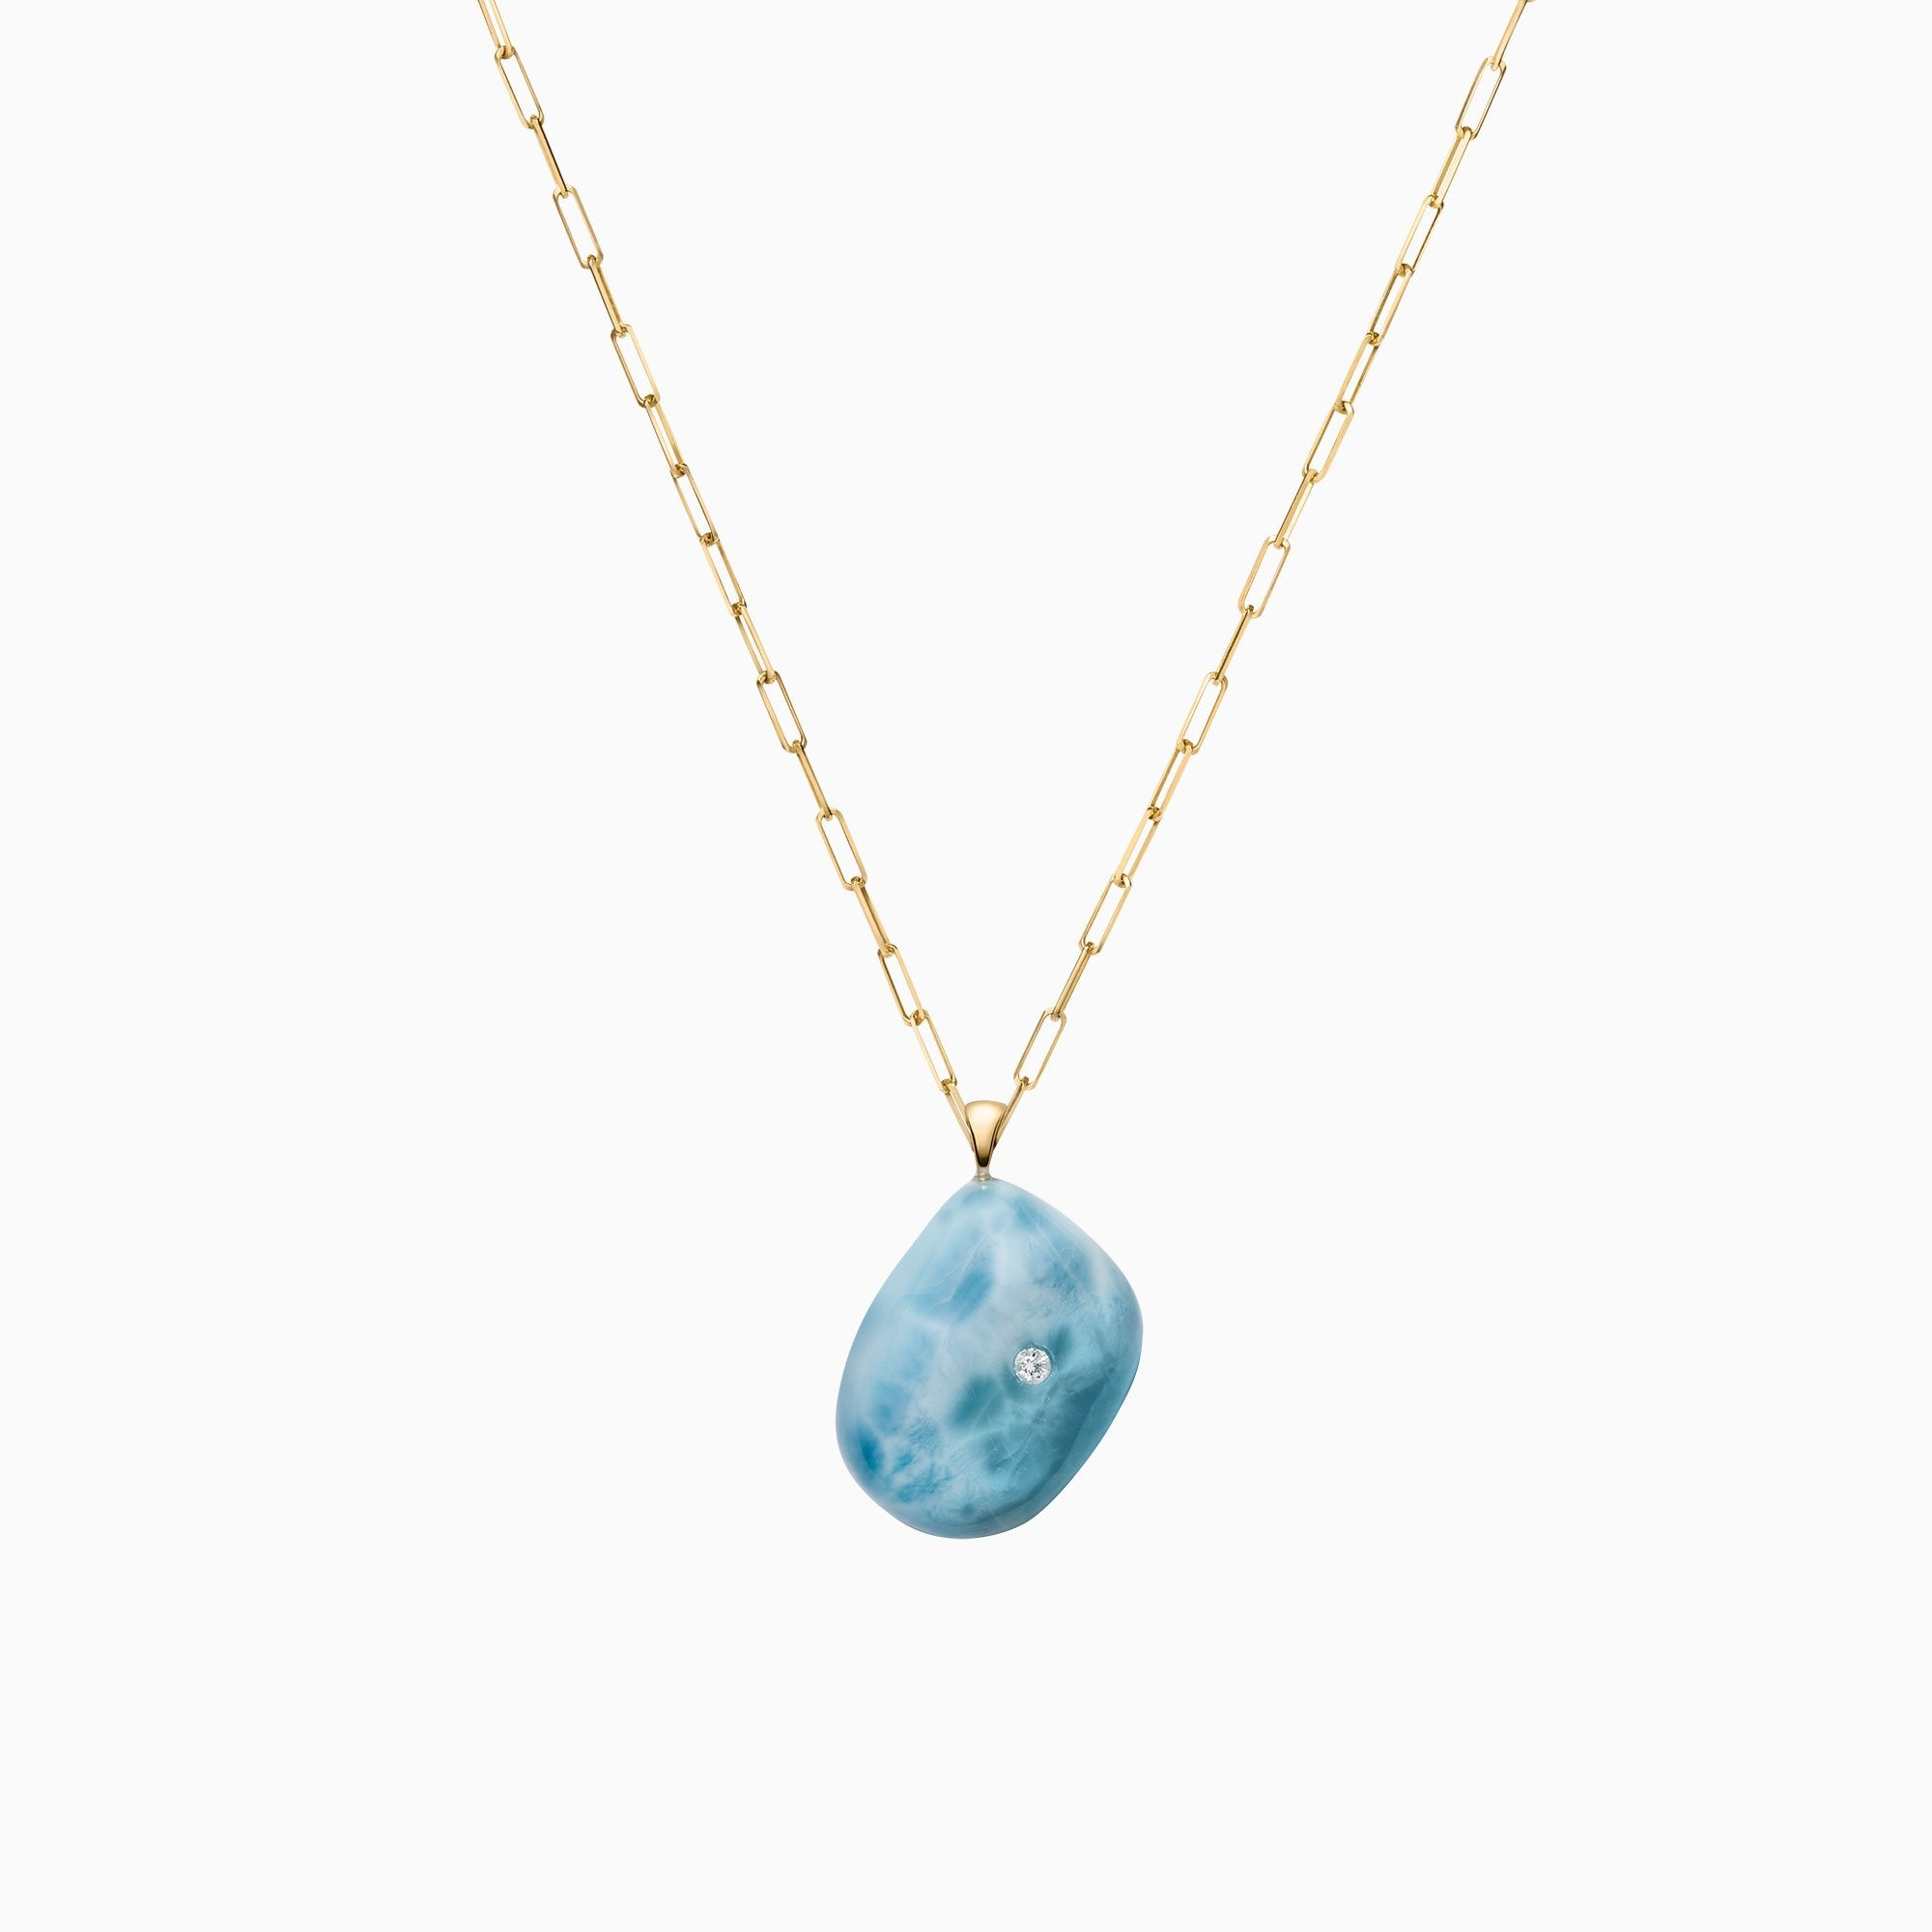 Nessa Designs Jewelry | Necklaces | Vibrant Blues Pebble & Diamond